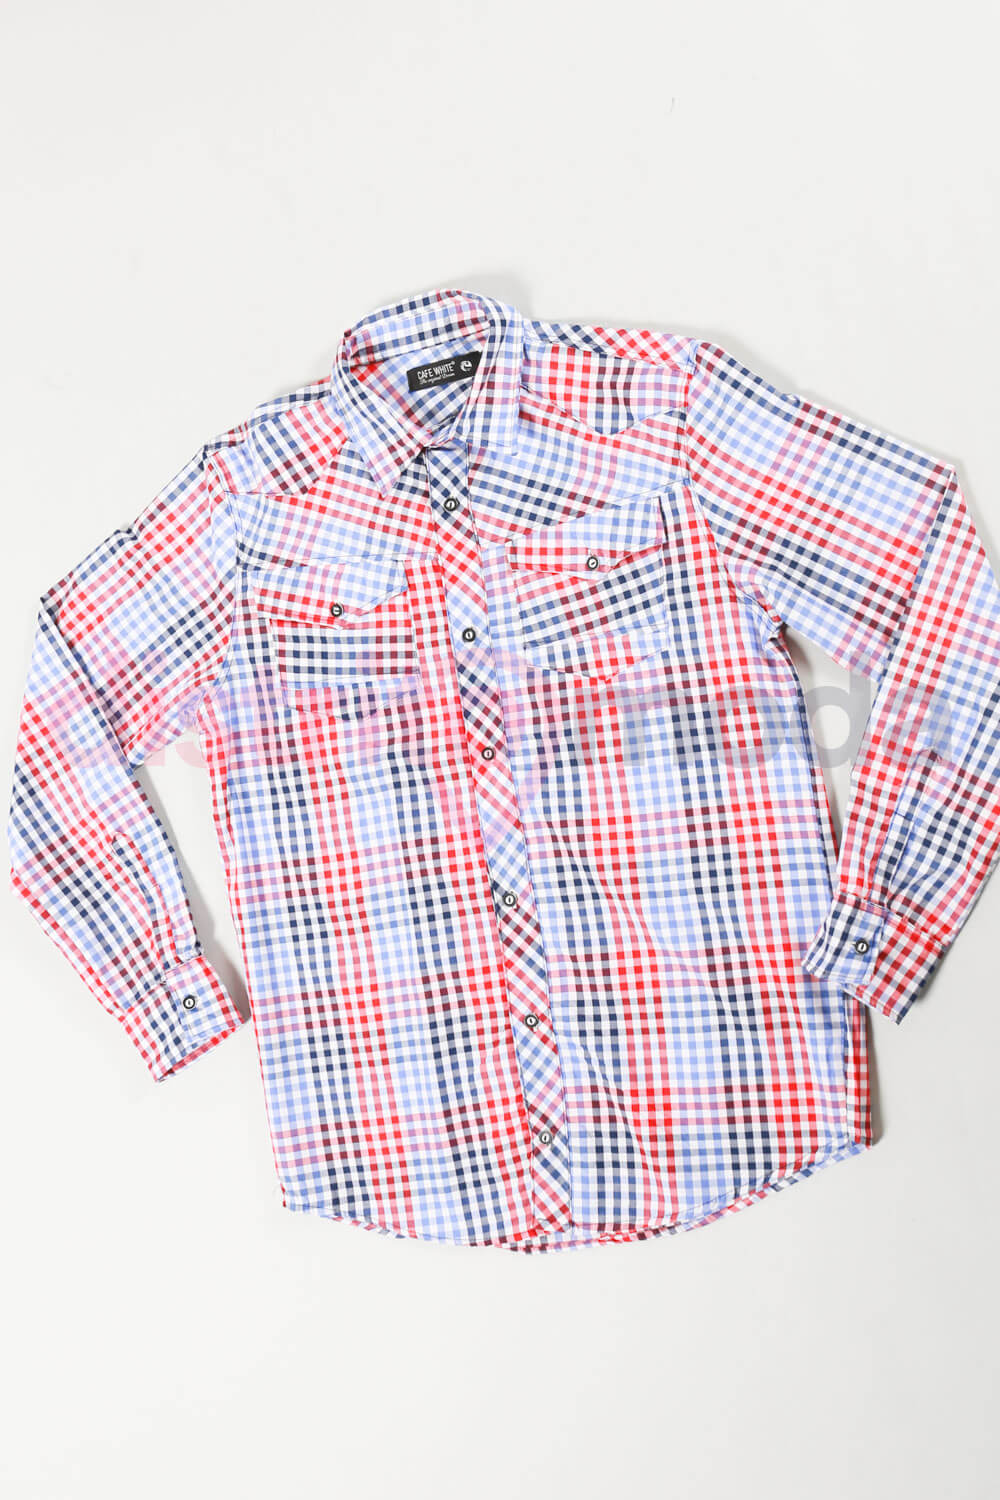 Imagen producto Camisa Escocesa Talle XS a XLL 4